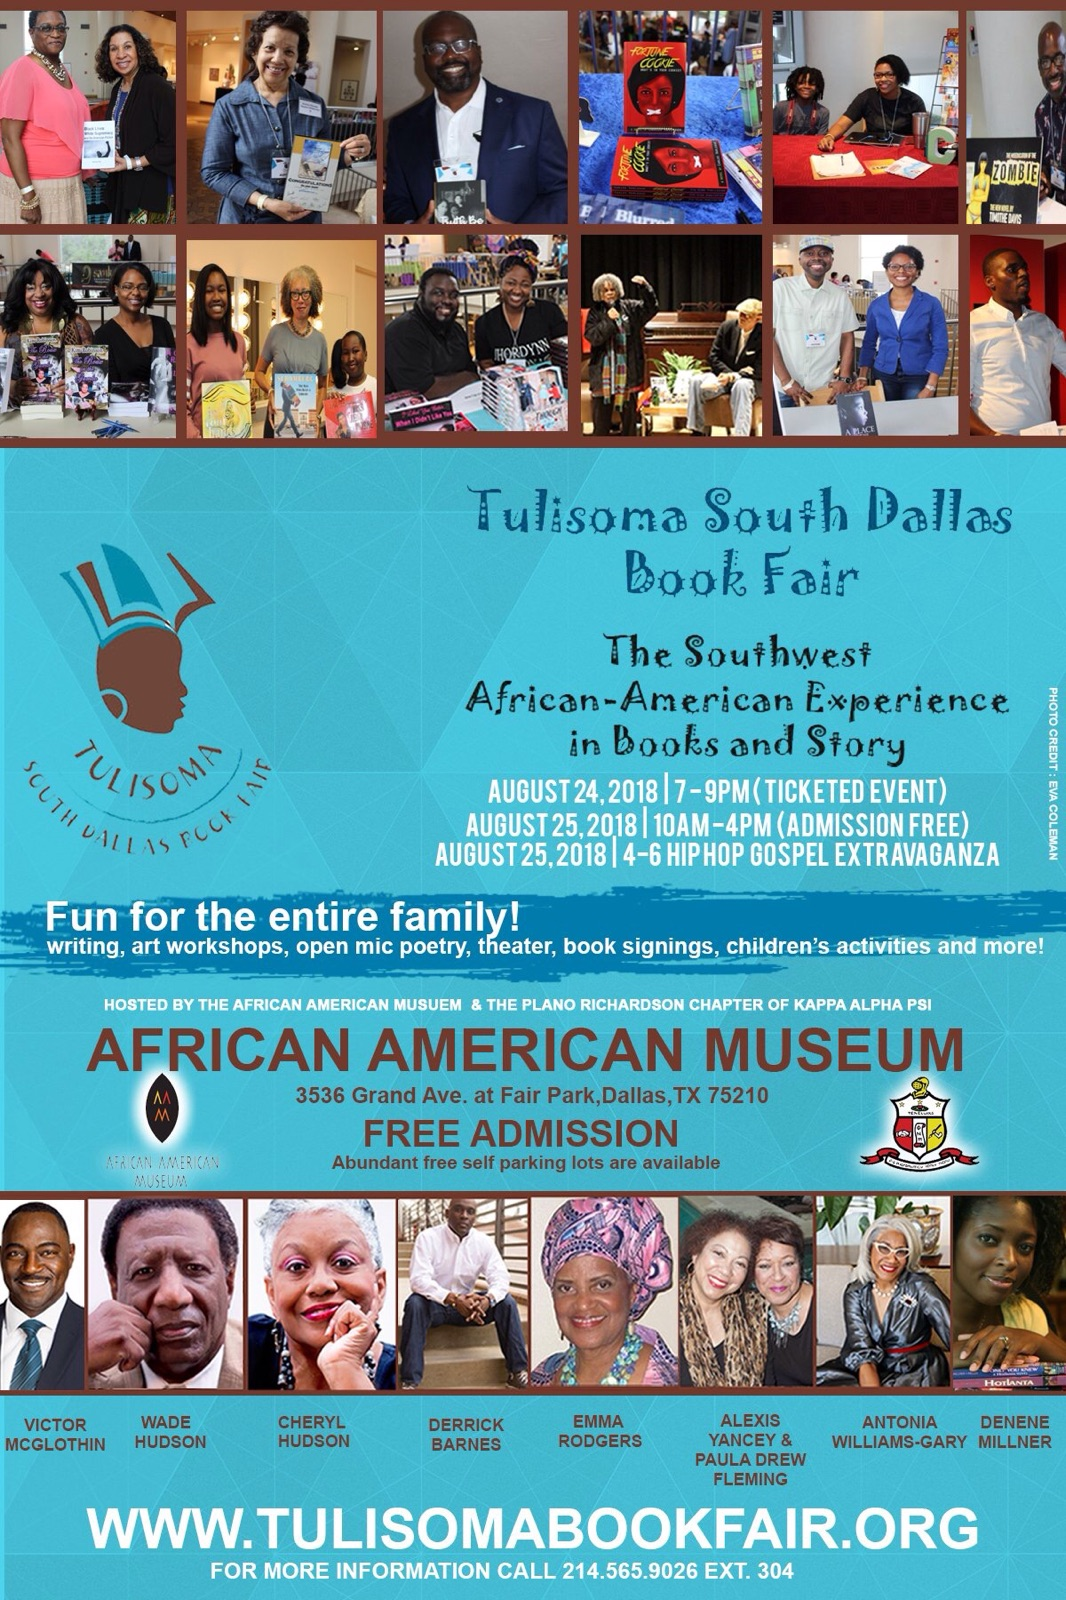 Tulisoma South Dallas Book Fair: 8/24-25